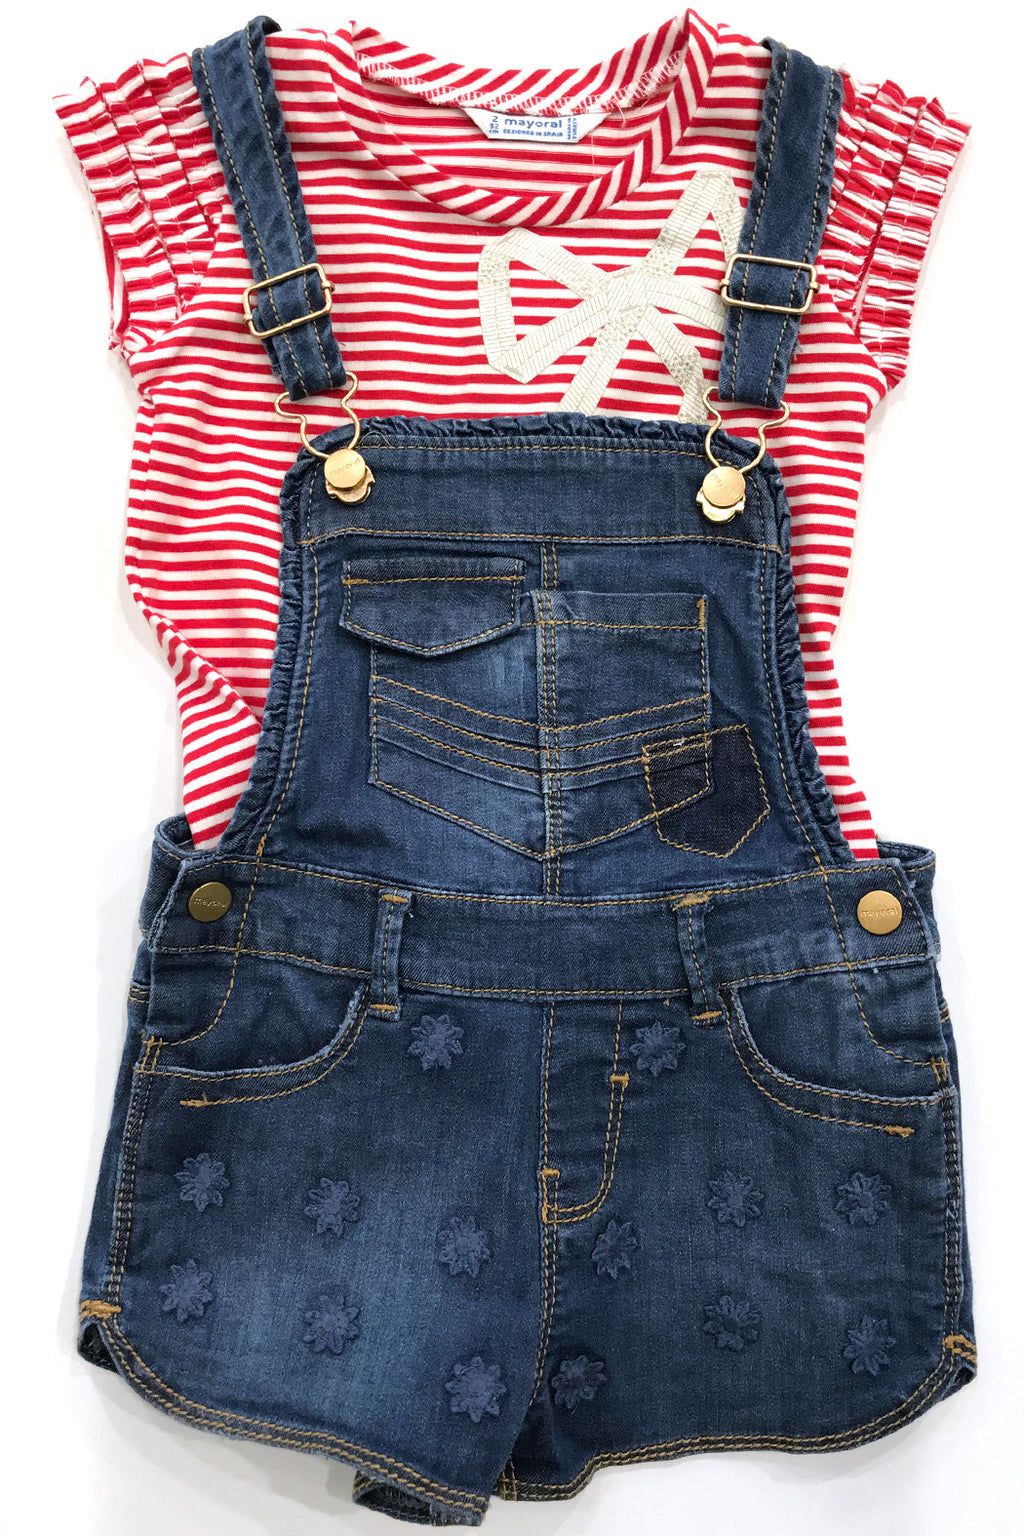 Mayoral - Denim Floral Dungaree Shorts - kkgivingtree - K&K's